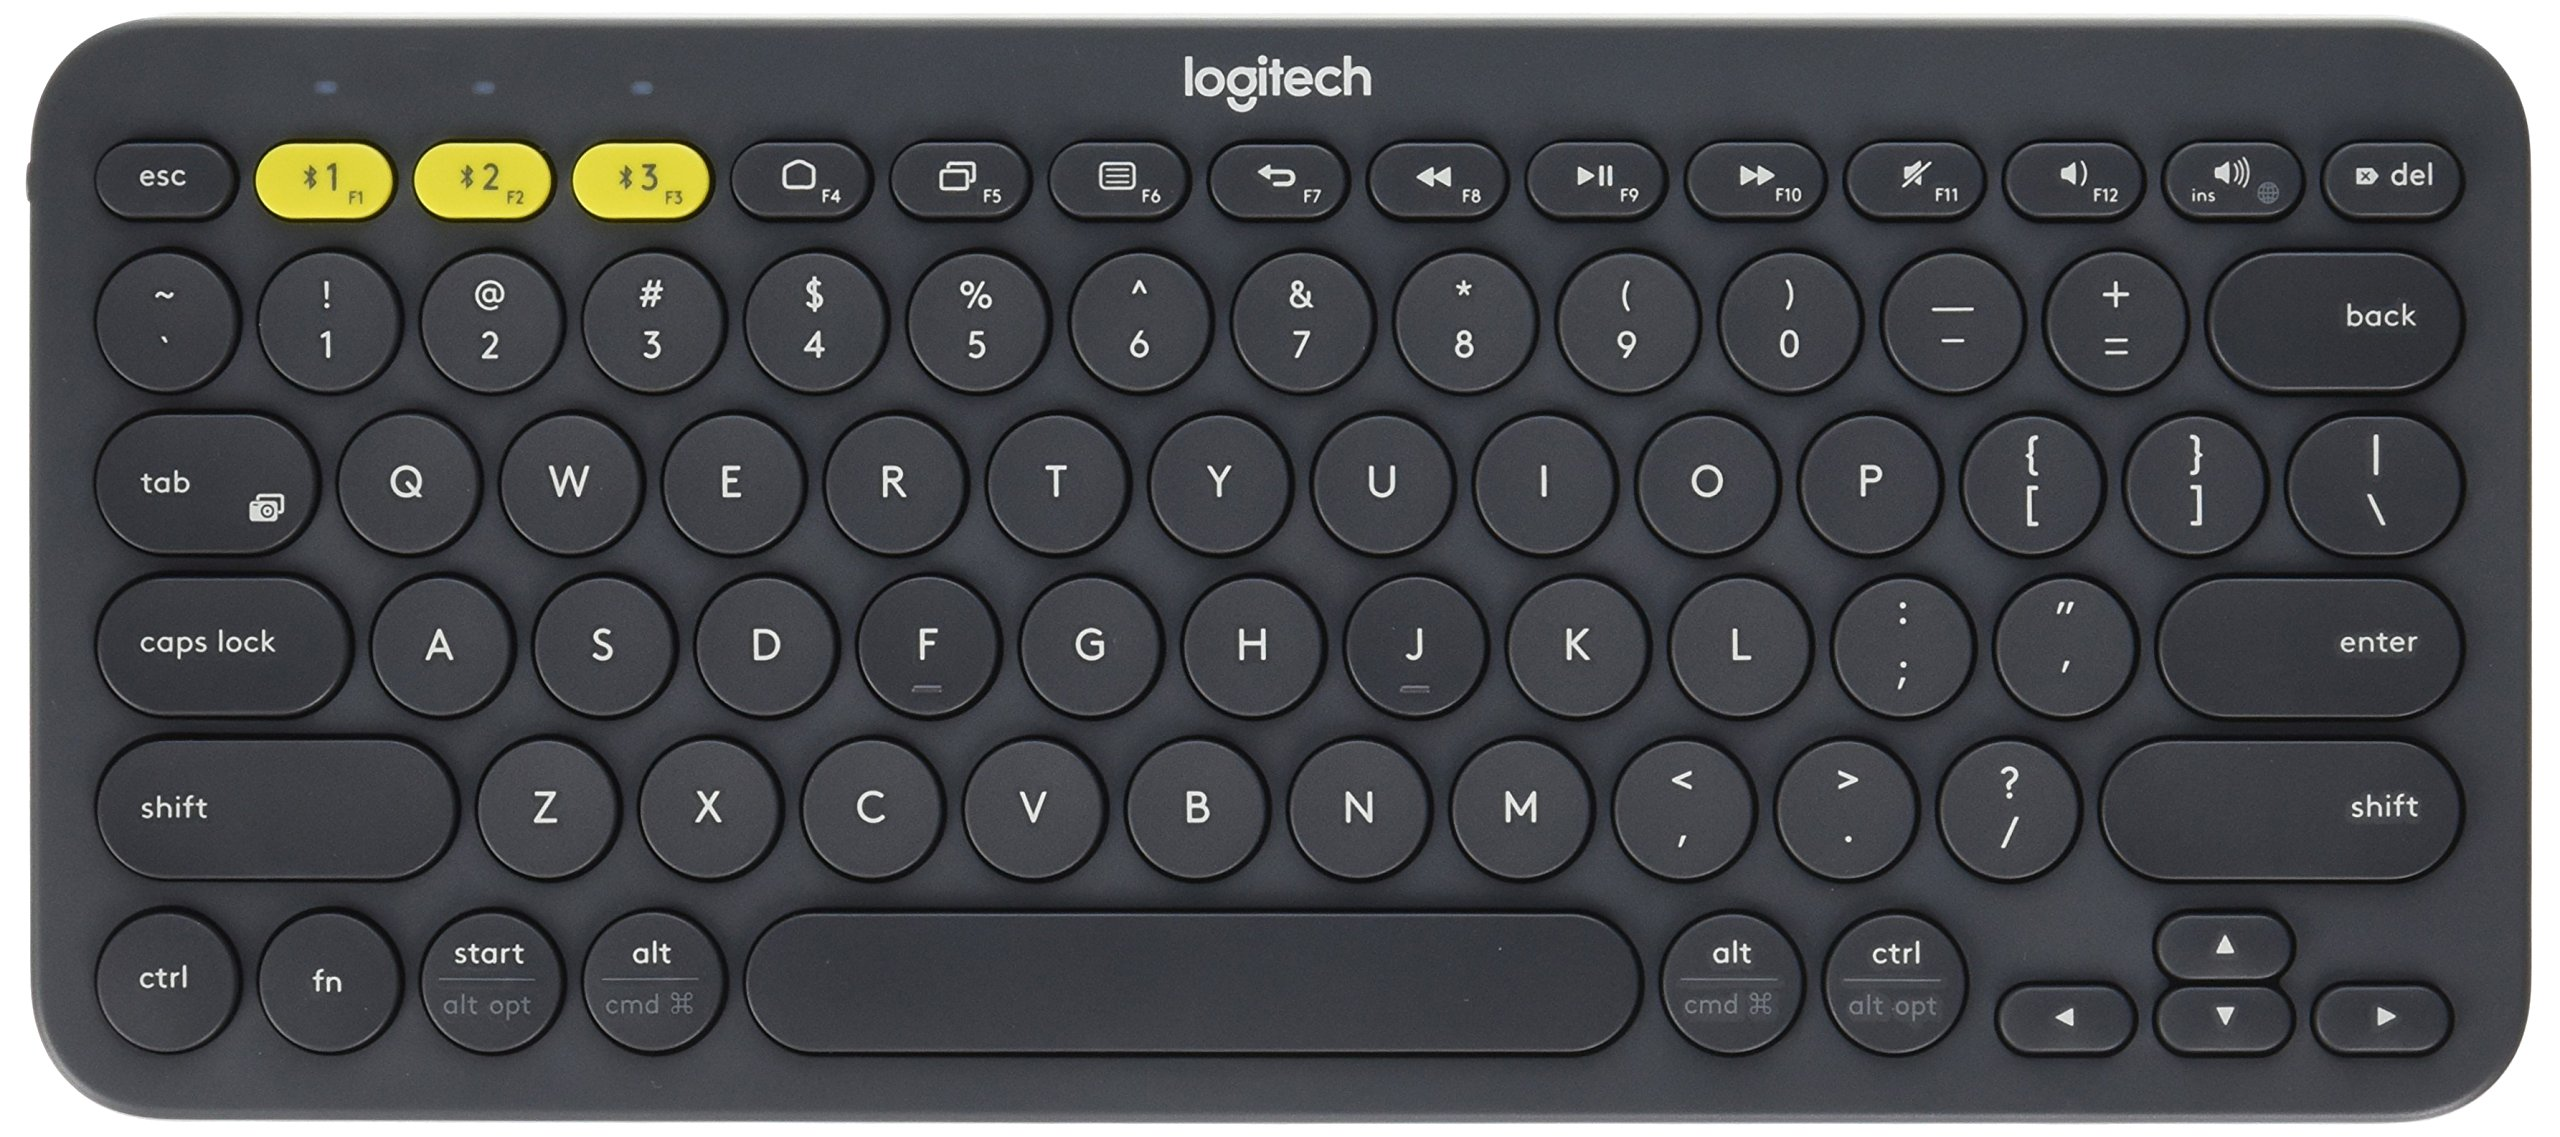 Logitech K380 Multi-Device Bluetooth Keyboard - Windows, Mac, Chrome OS, Android, iPad, iPhone, Apple TV Compatible - with FLOW Cross-Computer Control and Easy-Switch up to 3 Devices - Dark Grey by Logitech